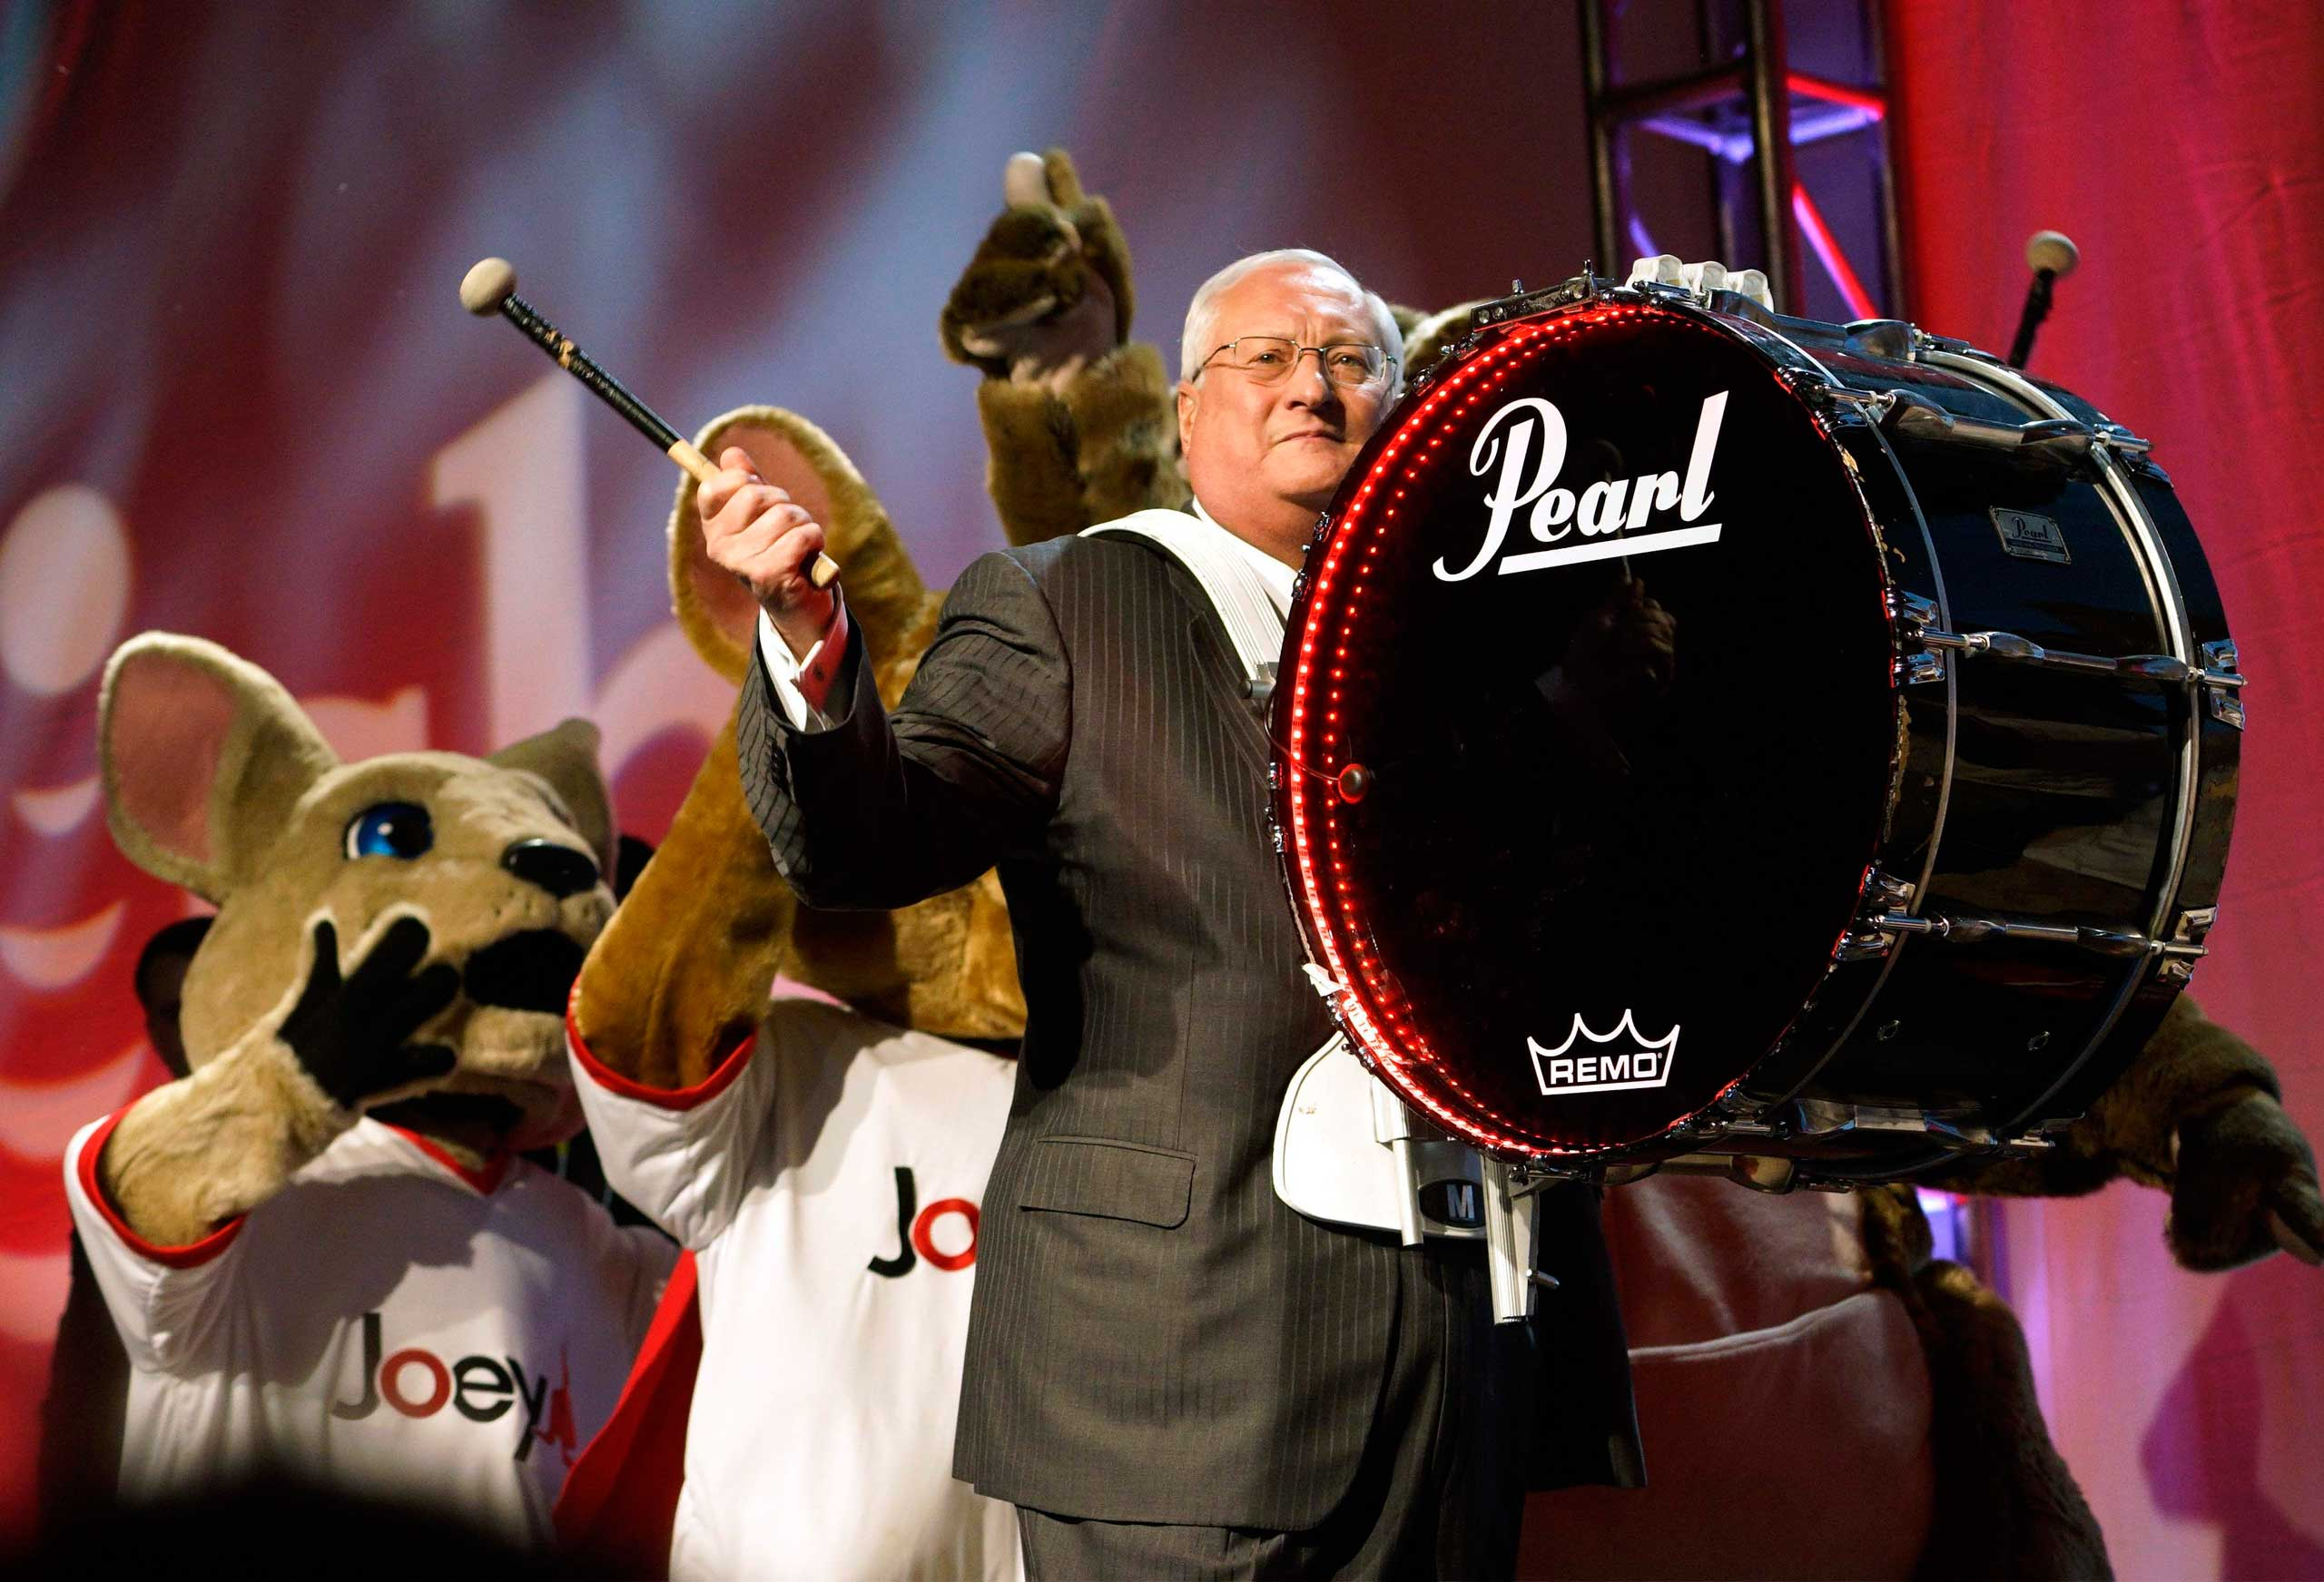 Joe Clayton, CEO of Dish, arrives on stage banging a bass drum followed by company mascots during the Dish news conference on Jan. 5, 2015.